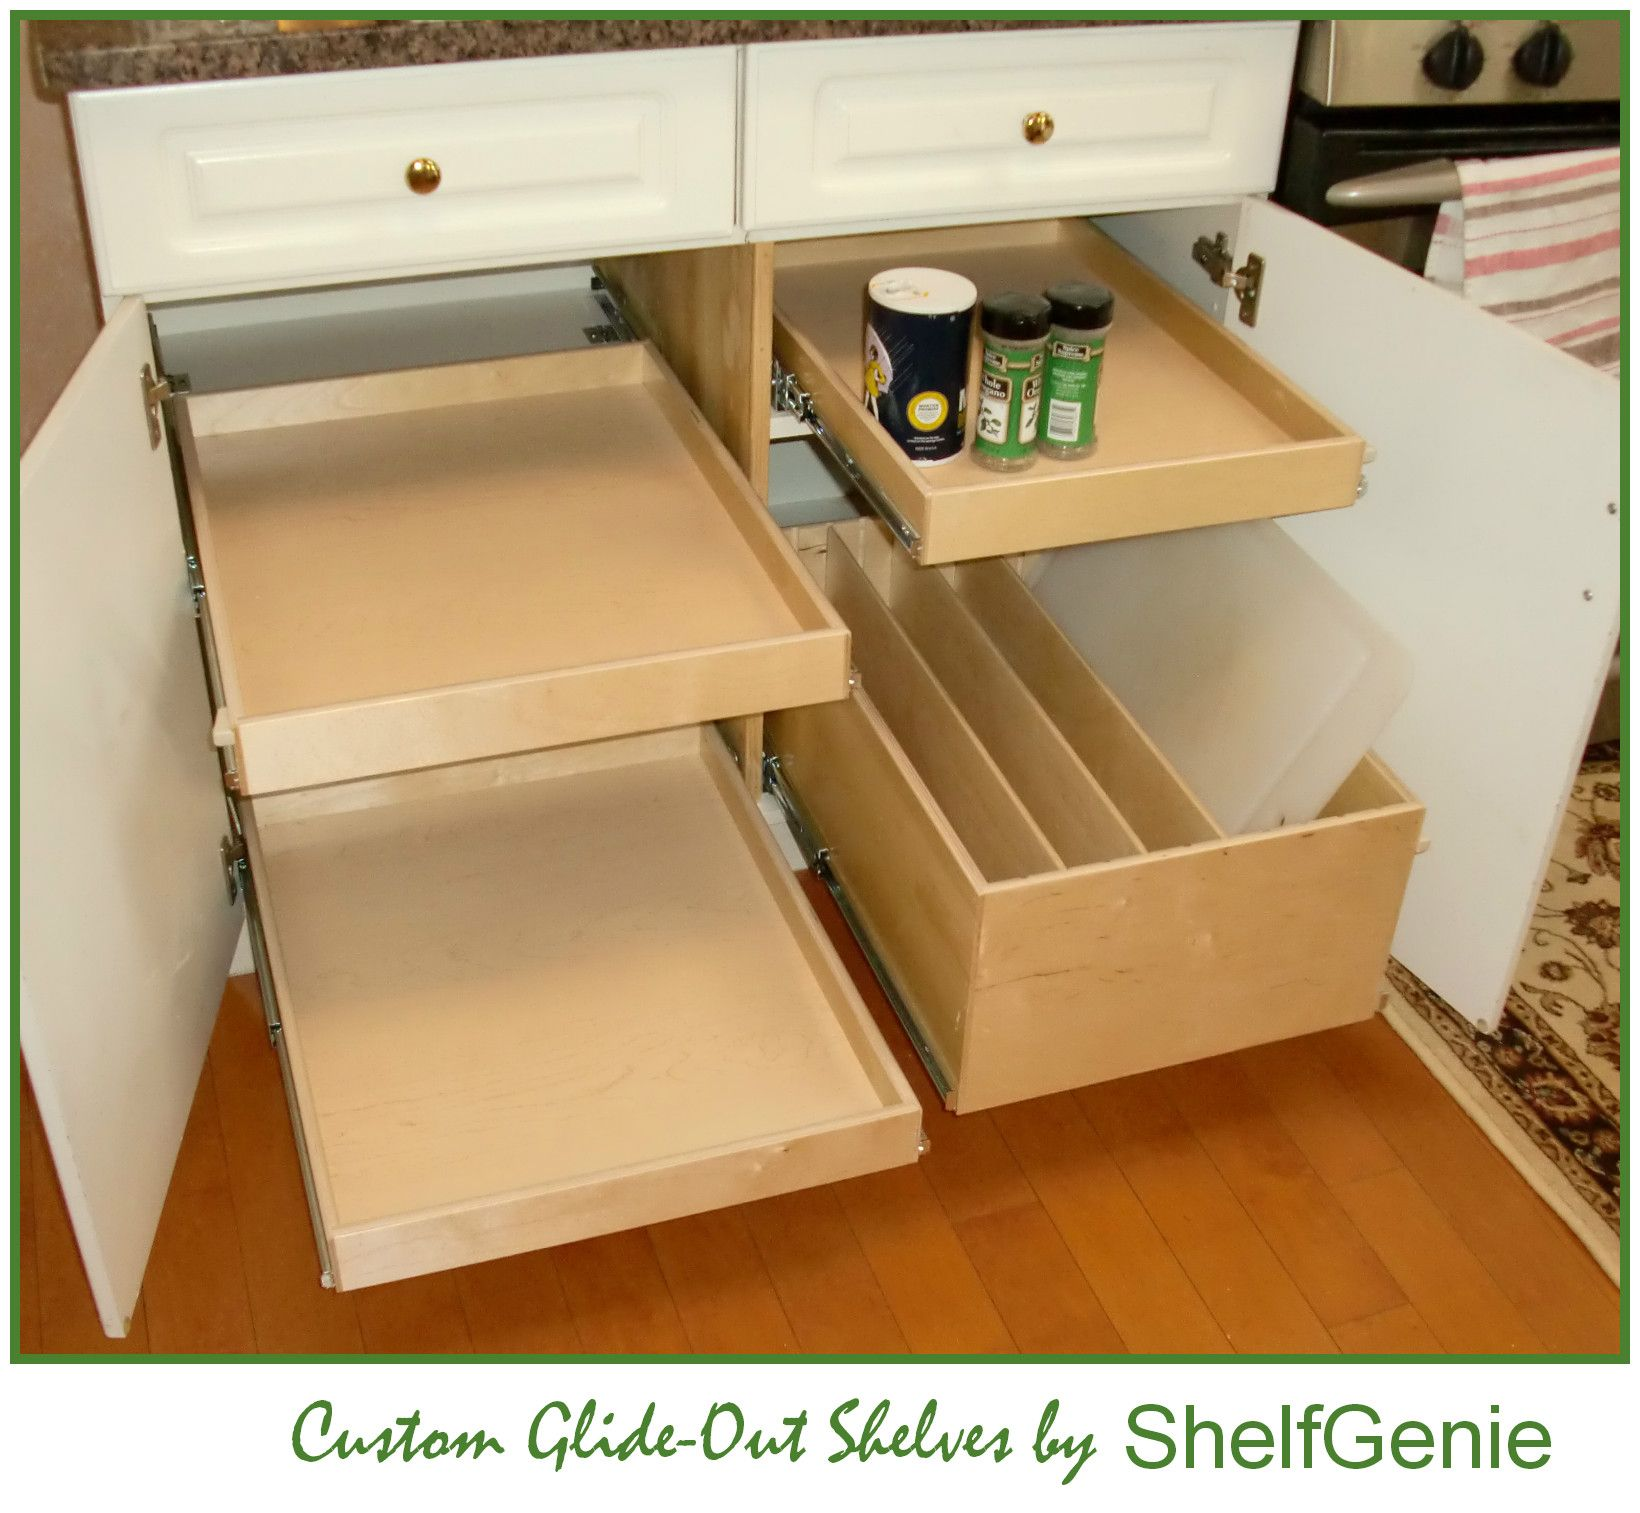 4 Ways To Personalize Your Kitchen Cabinets: ShelfGenie Designs, Builds And Installs Custom Glide-Out